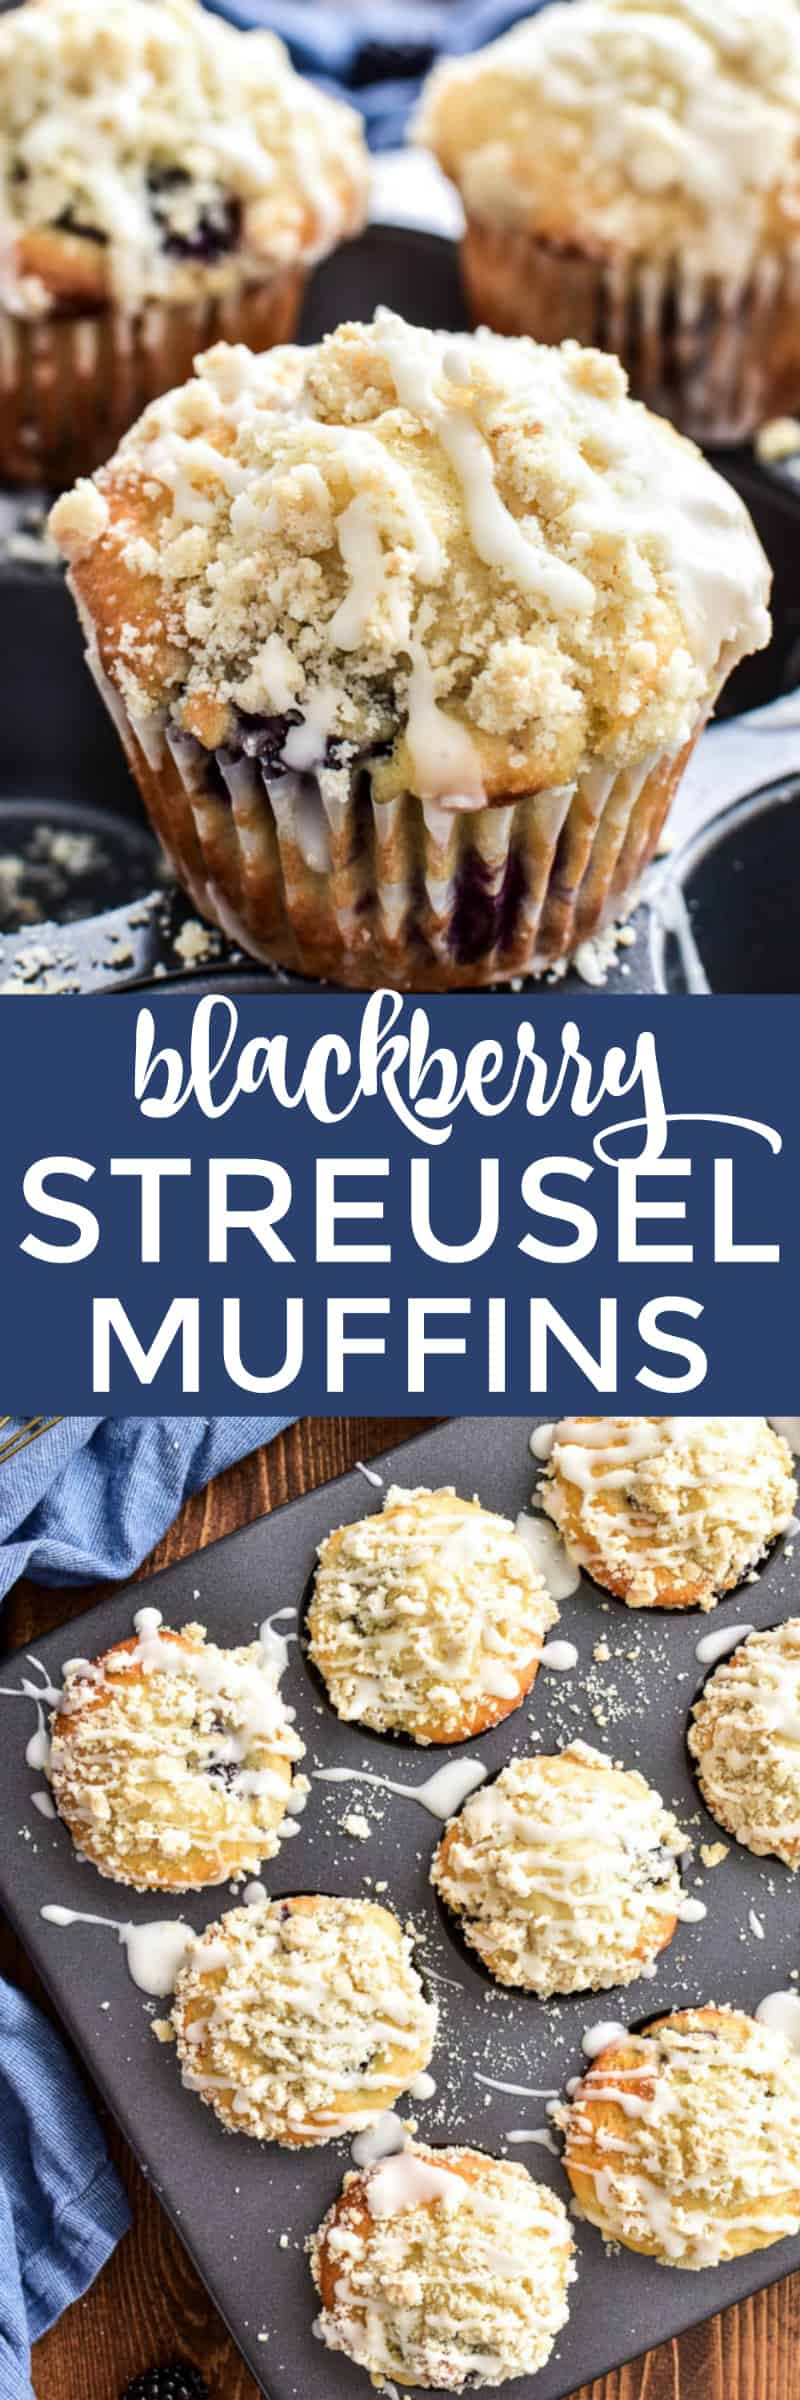 Collage image of Blackberry Streusel Muffins